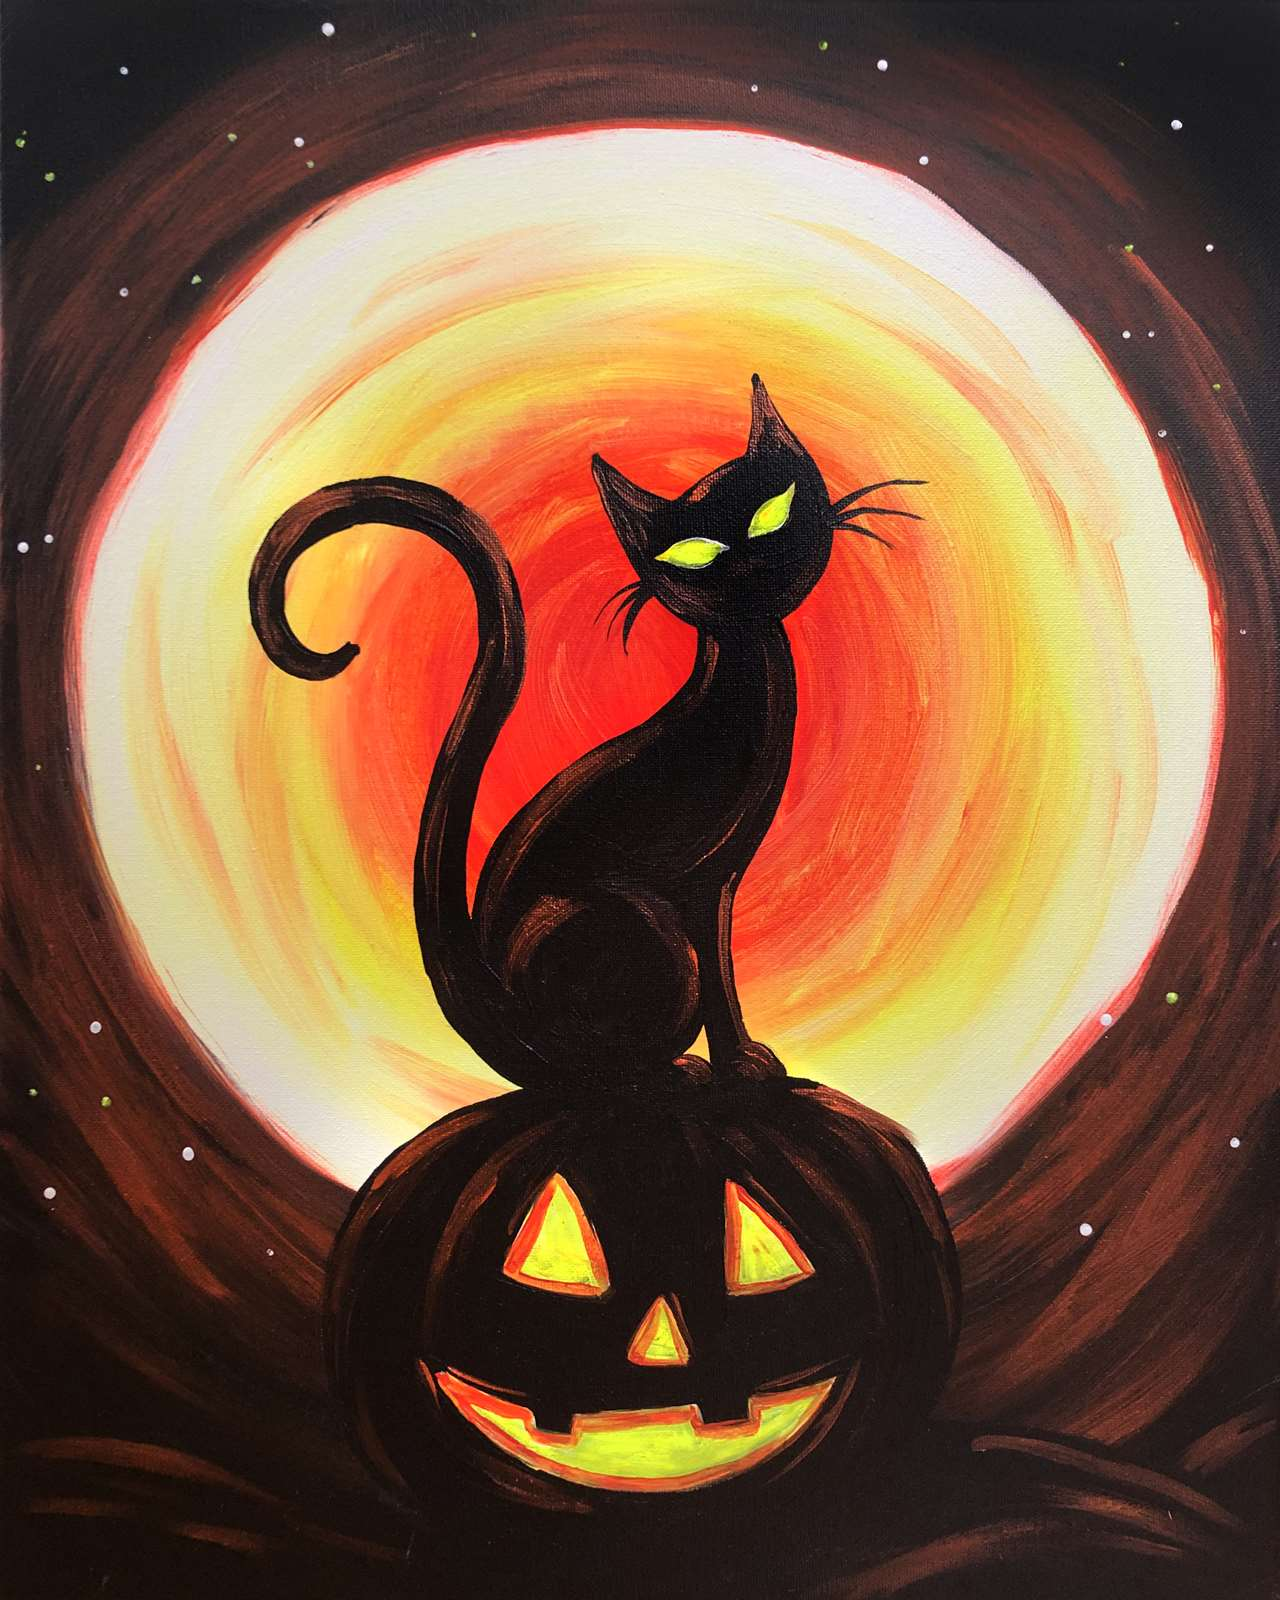 Eyes Aglow on Halloween - Wed, Oct 30 7PM at Gilbert